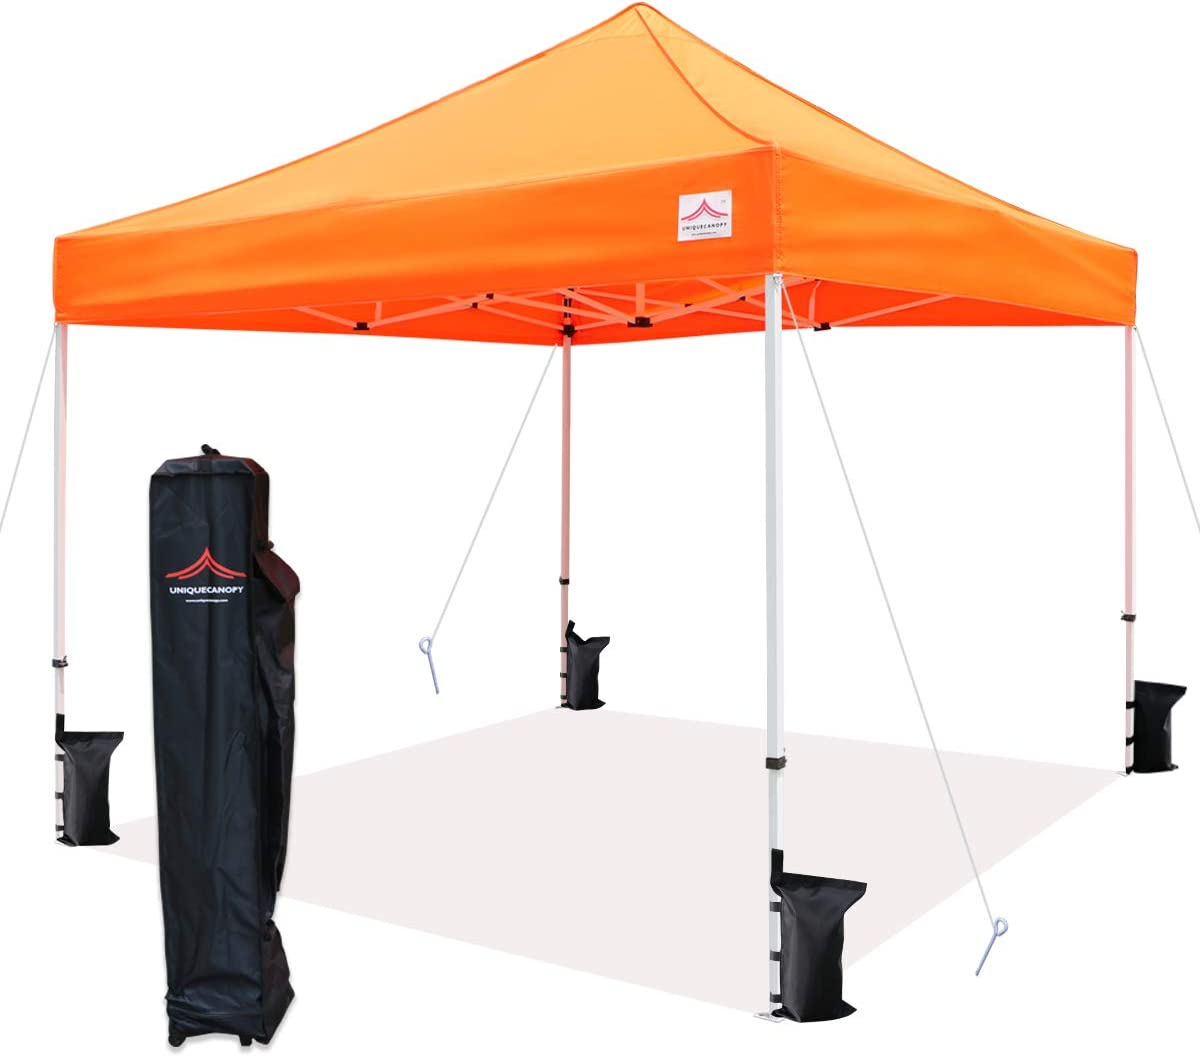 UNIQUECANOPY 10'x10' Ez Pop Up Canopy Tent Commercial Instant Shelter with Heavy Duty Roller Bag, 4 Canopy Sand Bags, 10x10 FT Orange